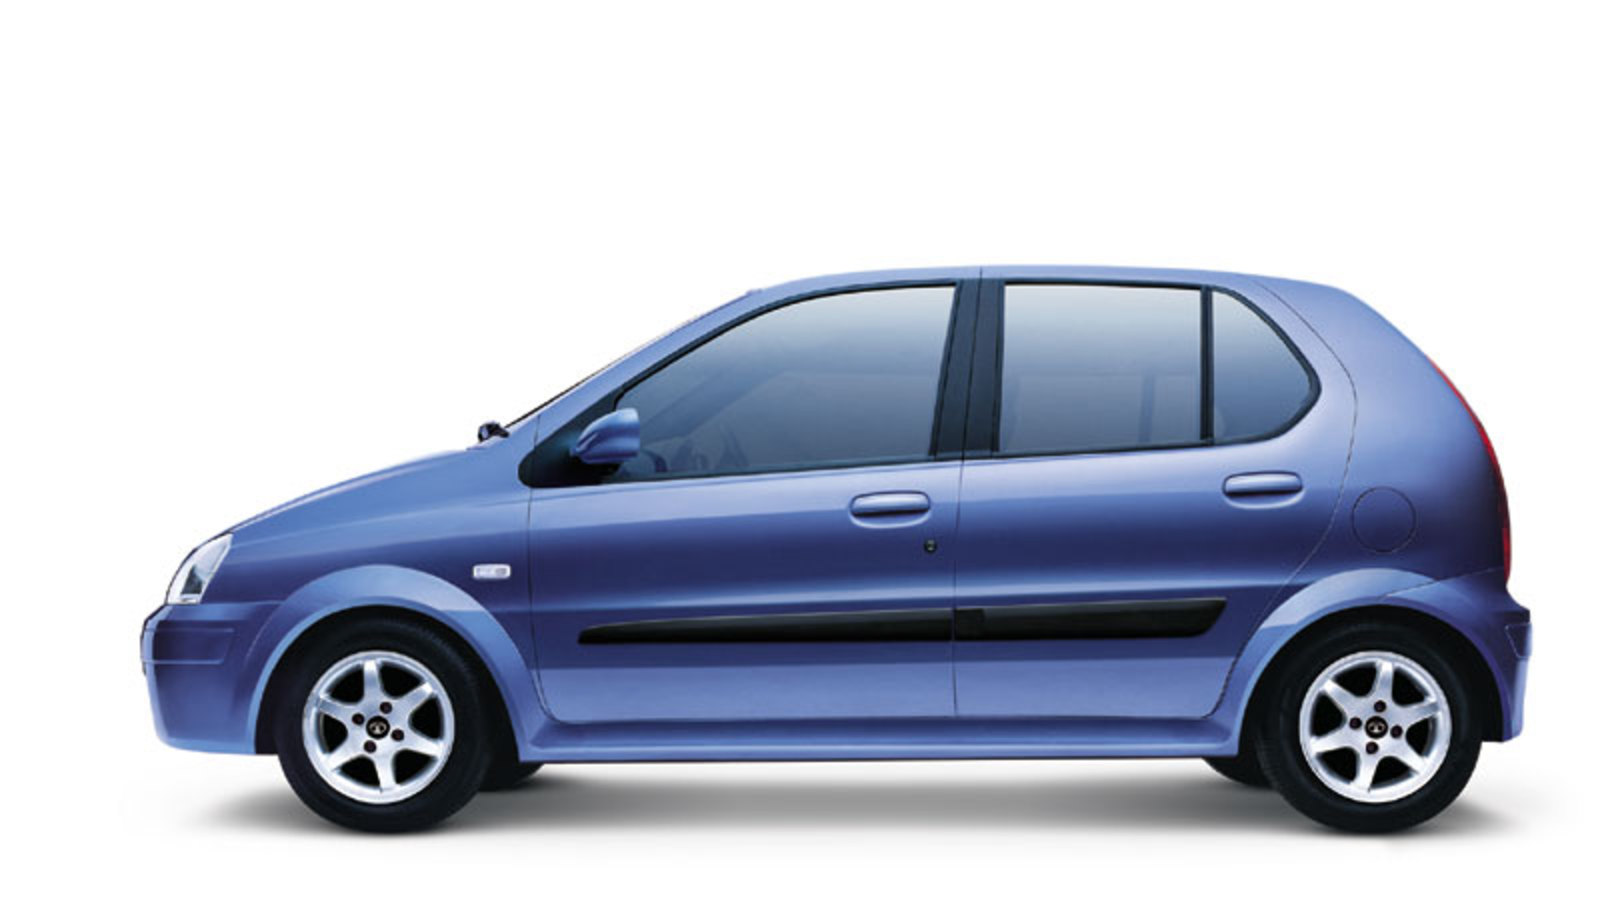 Tata Indica Review Price Photos Specifications Models | Auto Advices